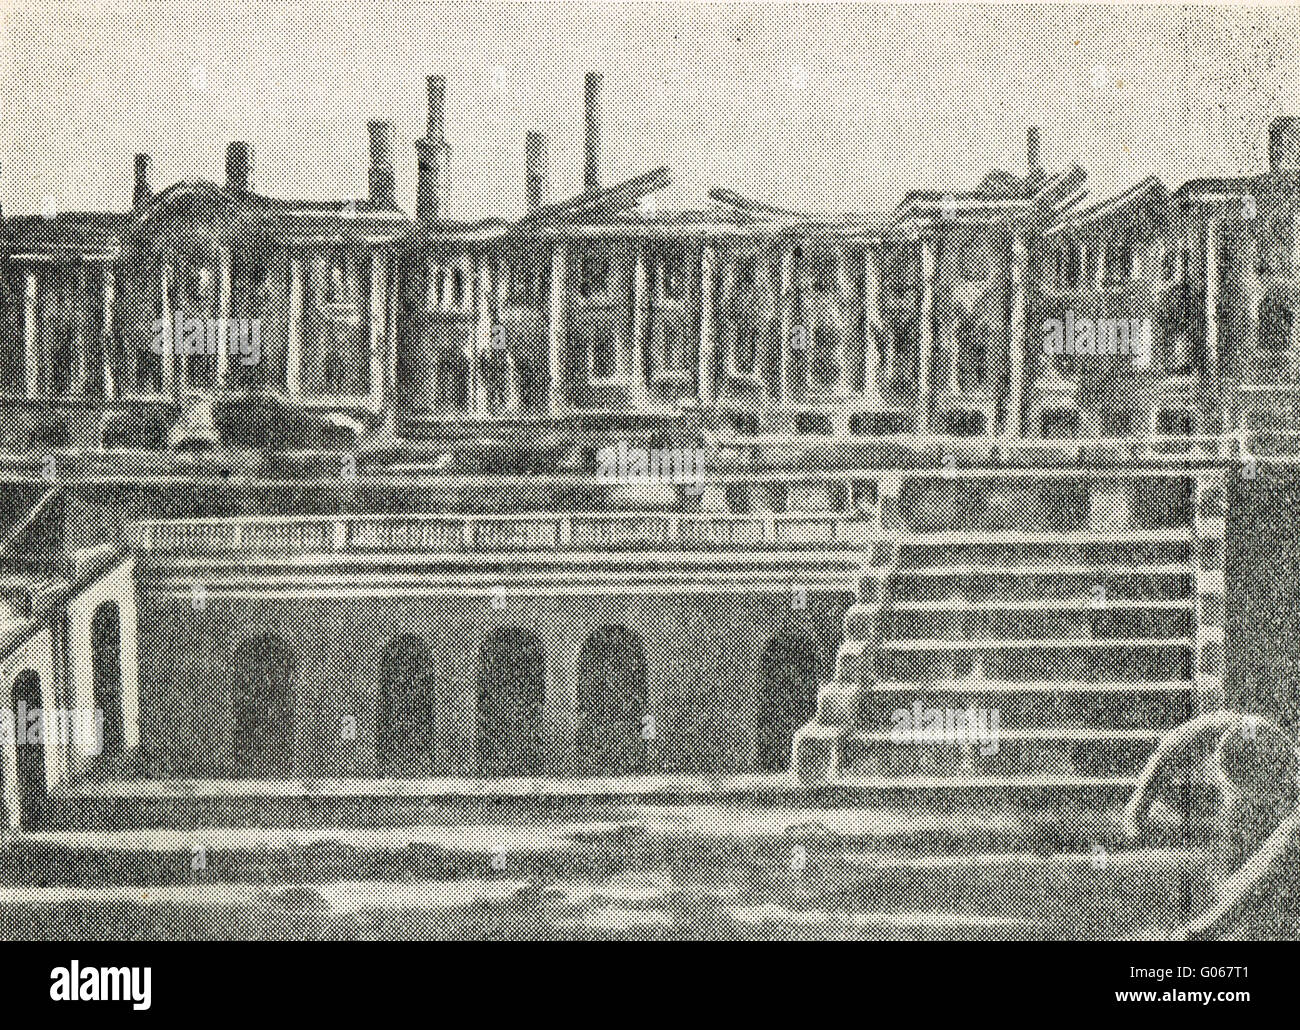 The remains of Peterhof Palace after the Siege of Leningrad 1944 - Stock Image